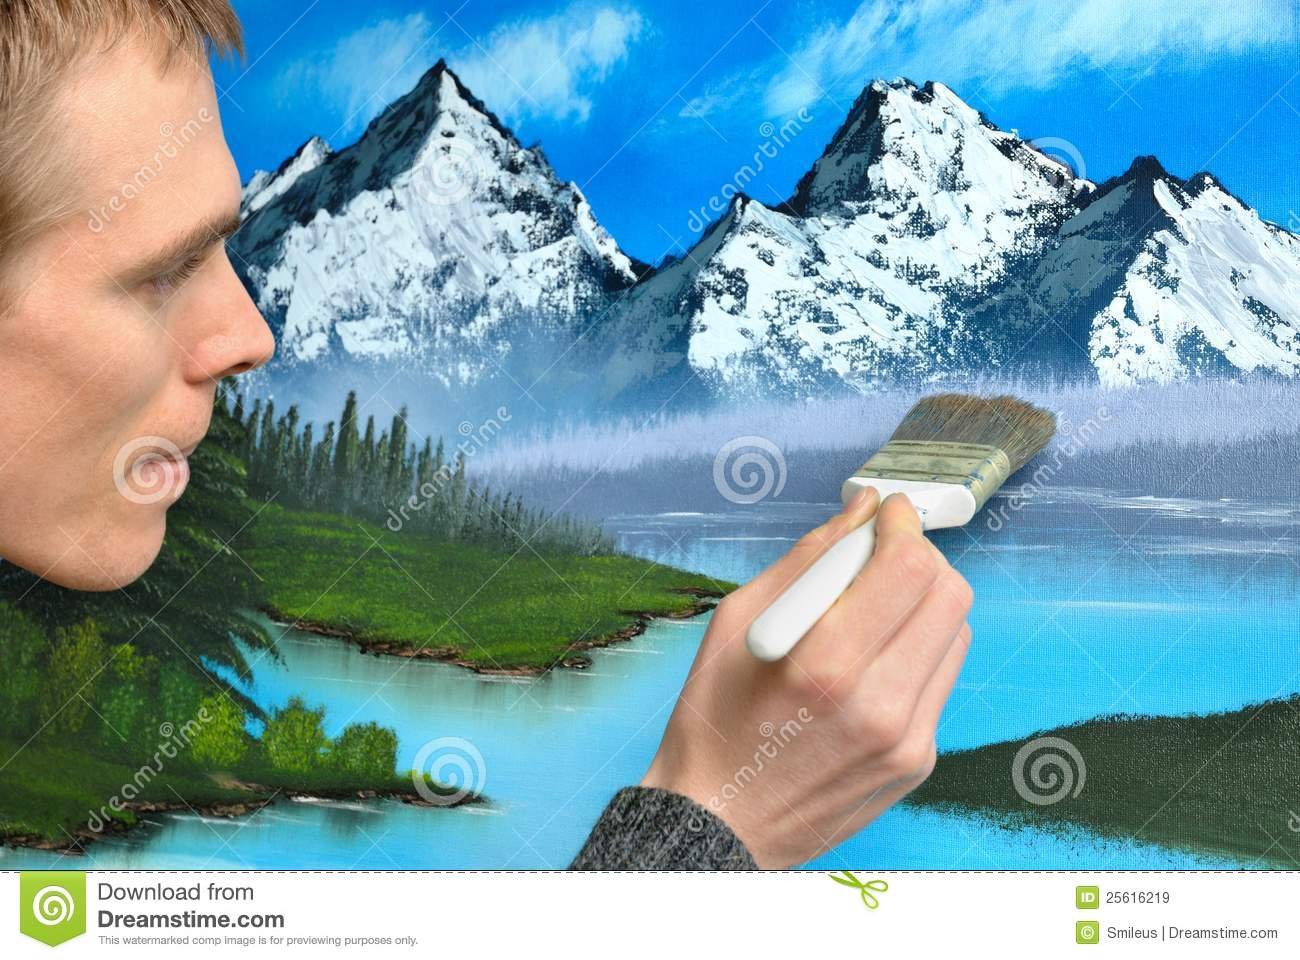 Artist creating a landscape painting